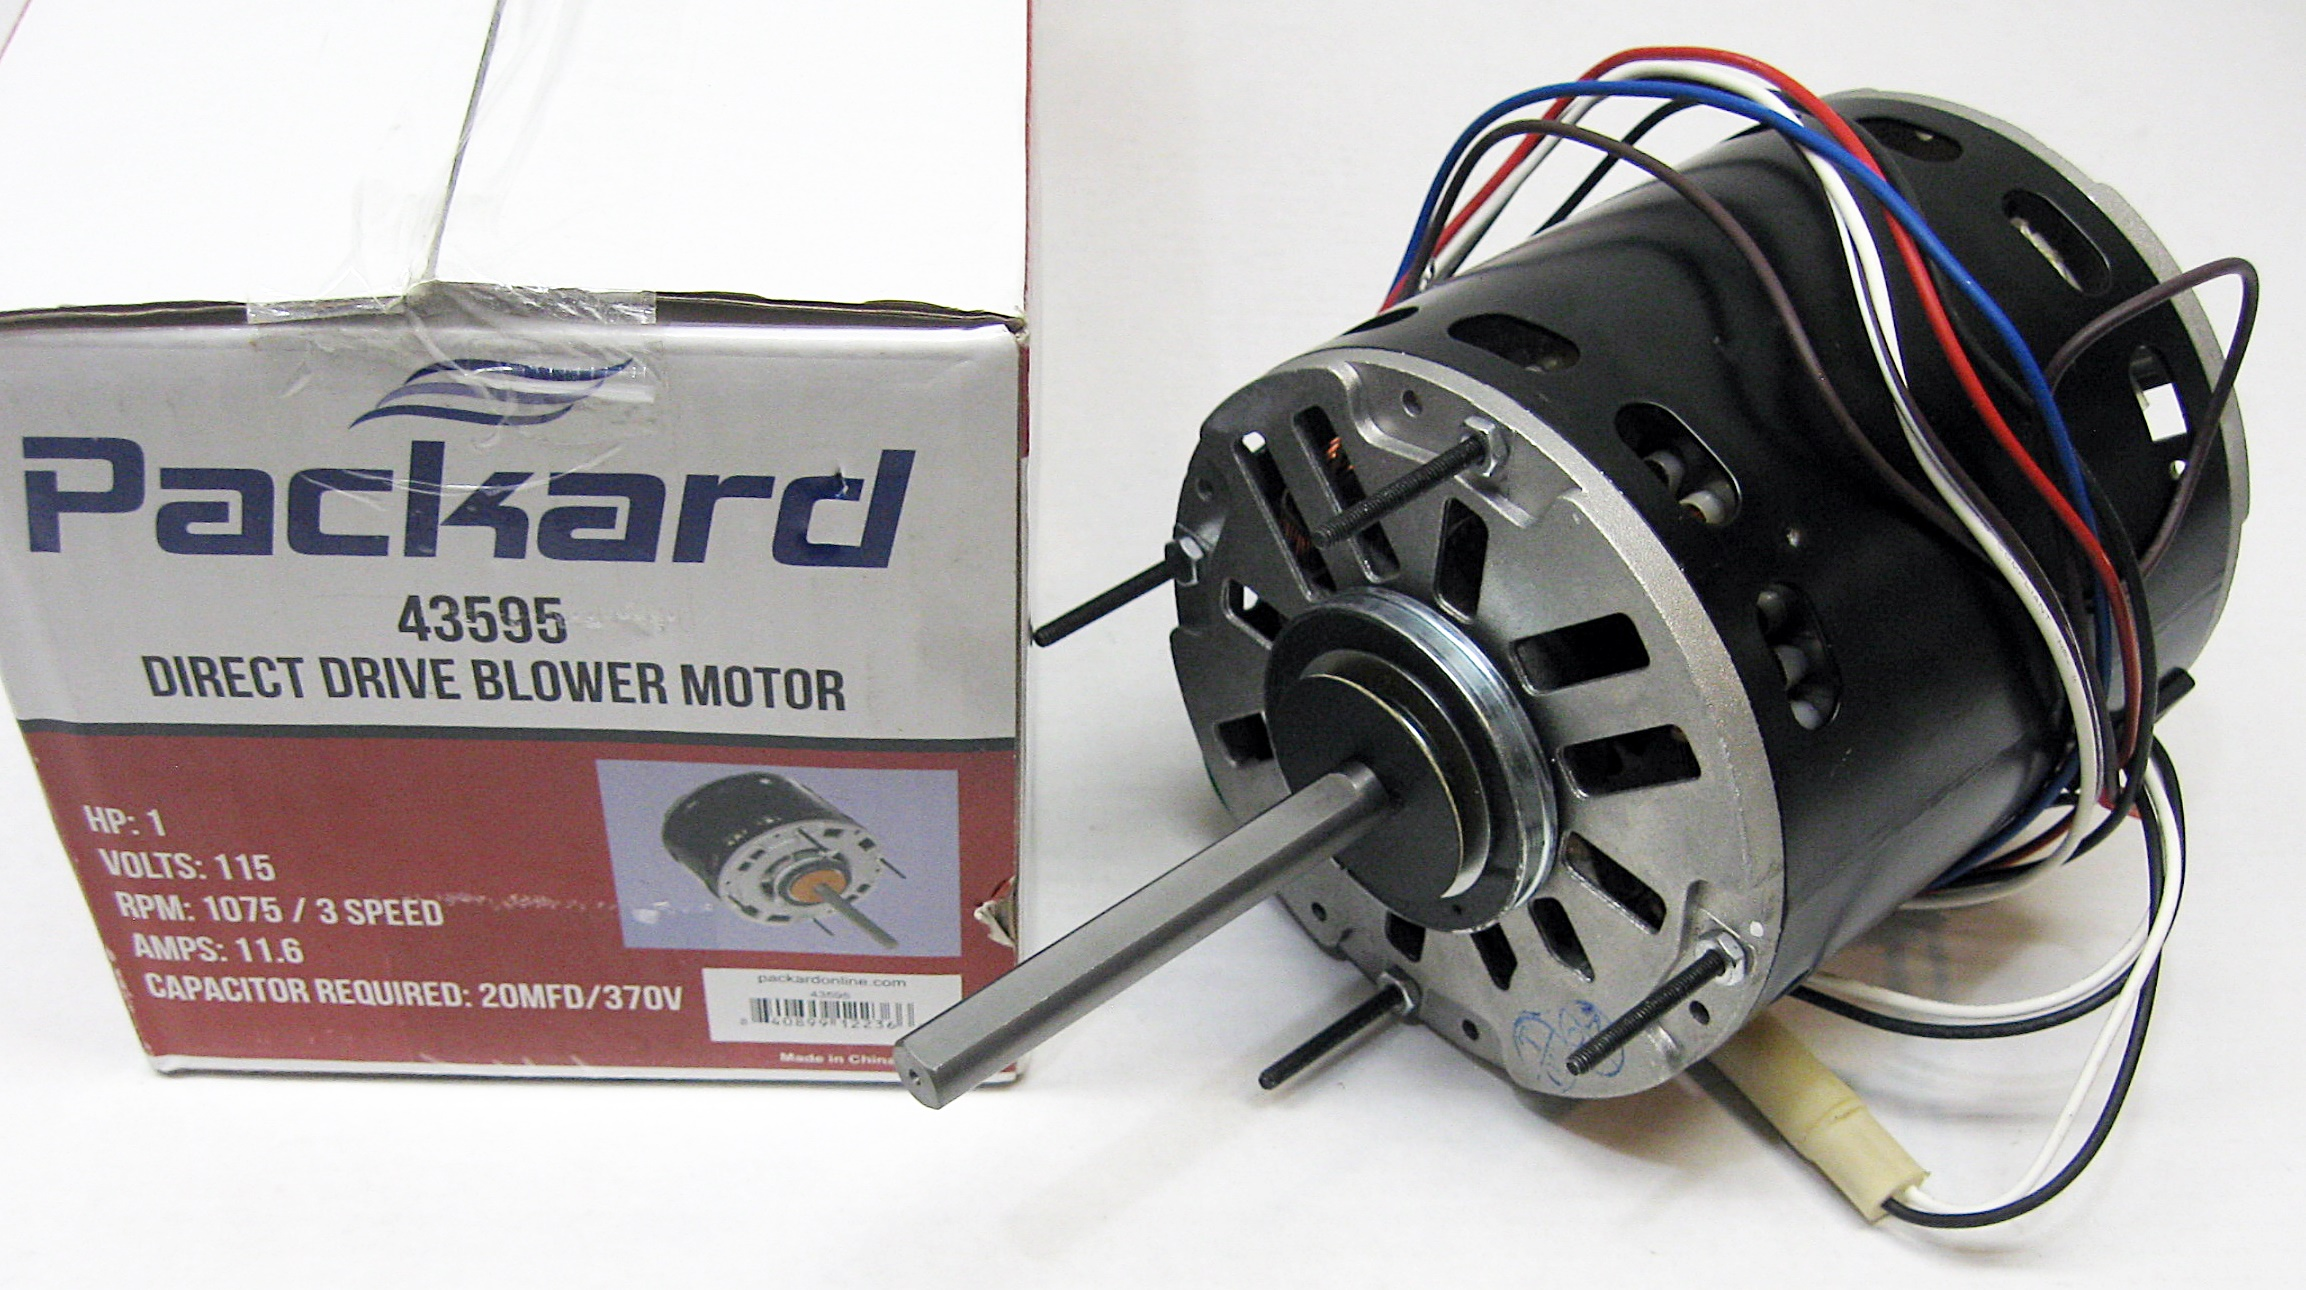 3 speed furnace blower fan motor packard 43595 1 hp 1075 rpm 115 also furnace blower fan motor on emerson electric pool motor diagram [ 2306 x 1290 Pixel ]